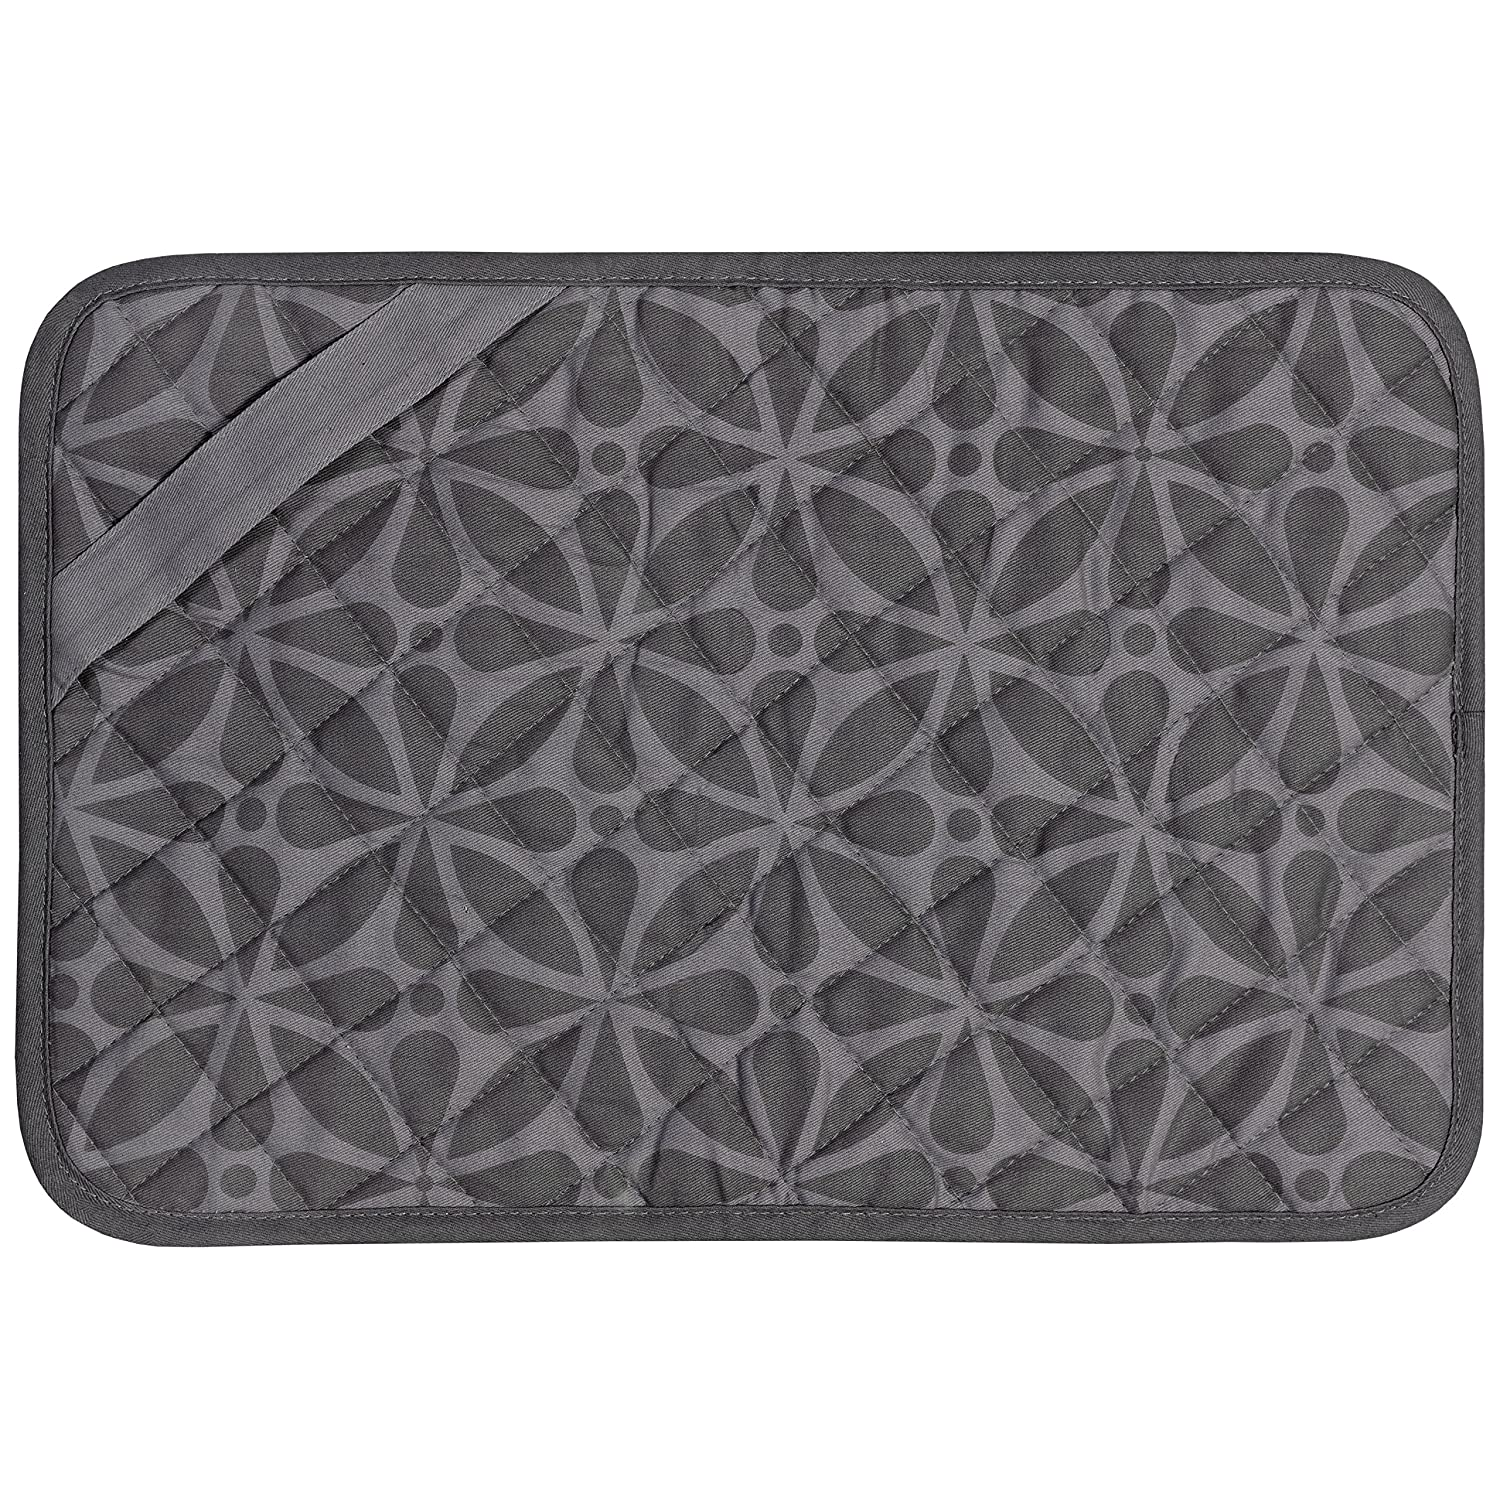 Envision Home 422300 Trivet Mat, 11 by 17-Inch, Black Schroeder & Tremayne Inc. 422301